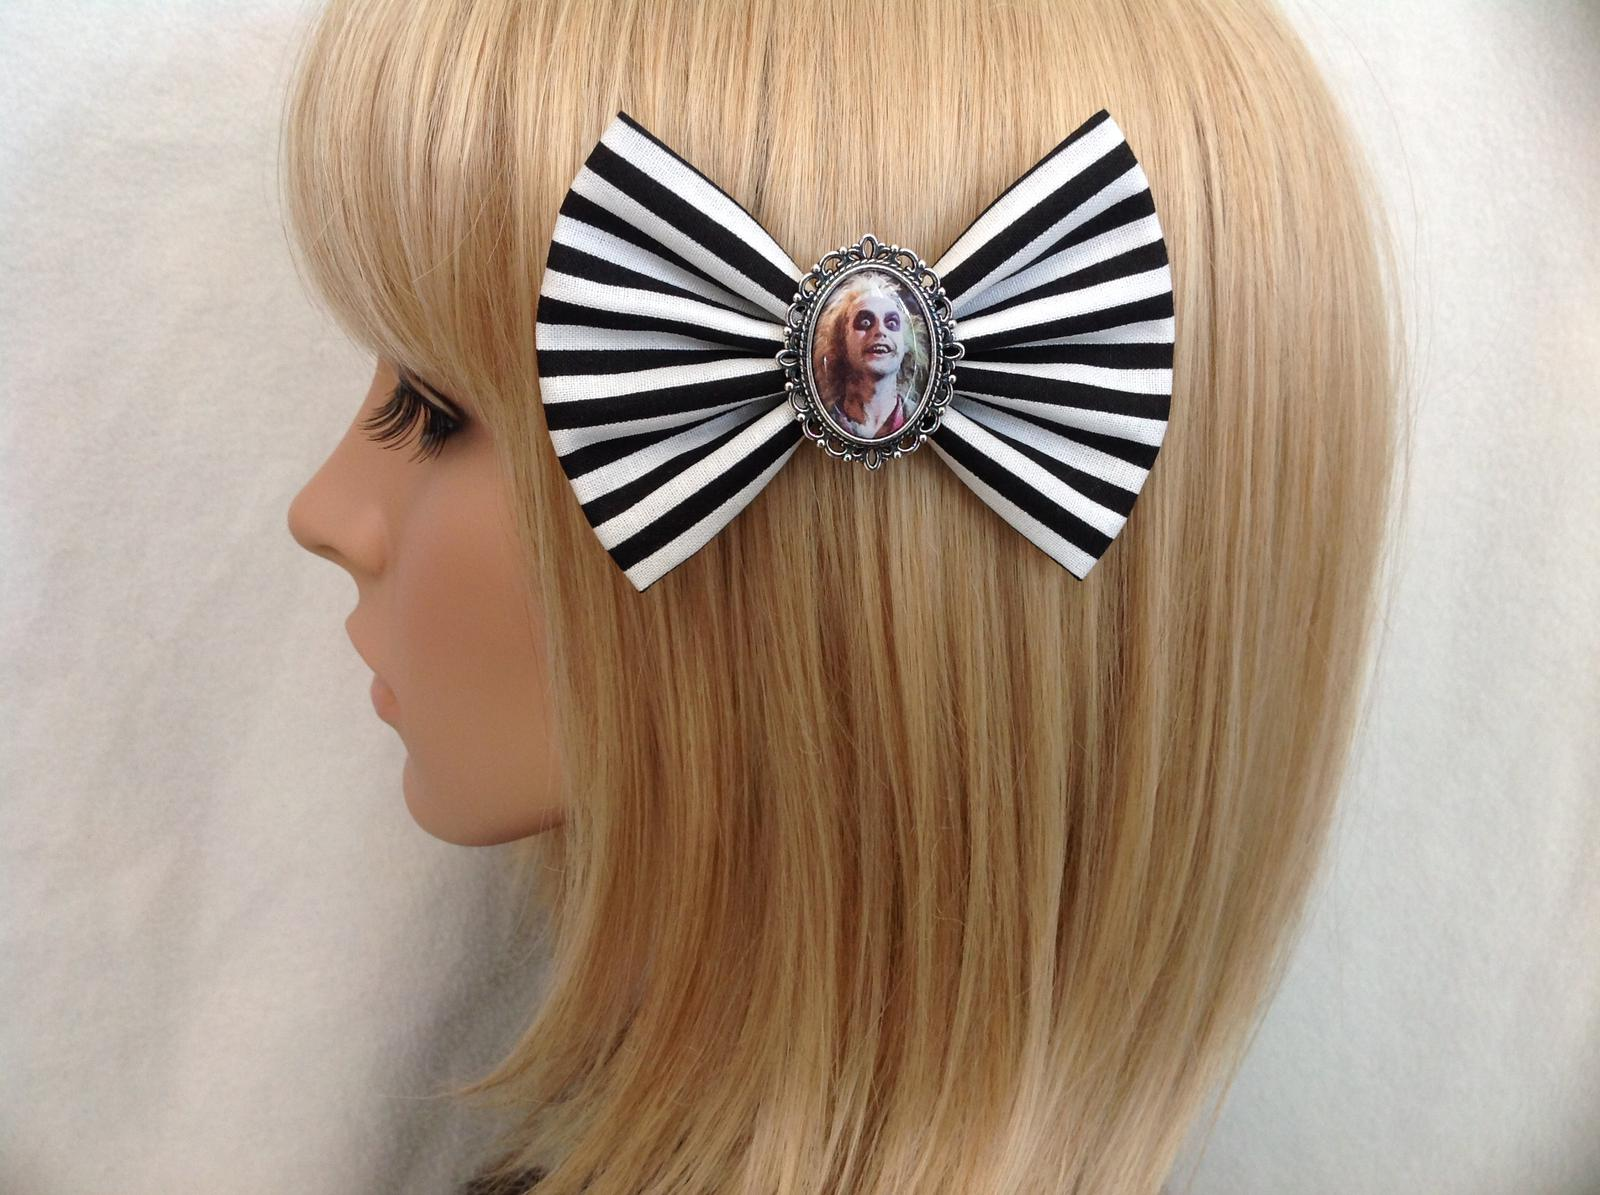 Beetlejuice hair bow